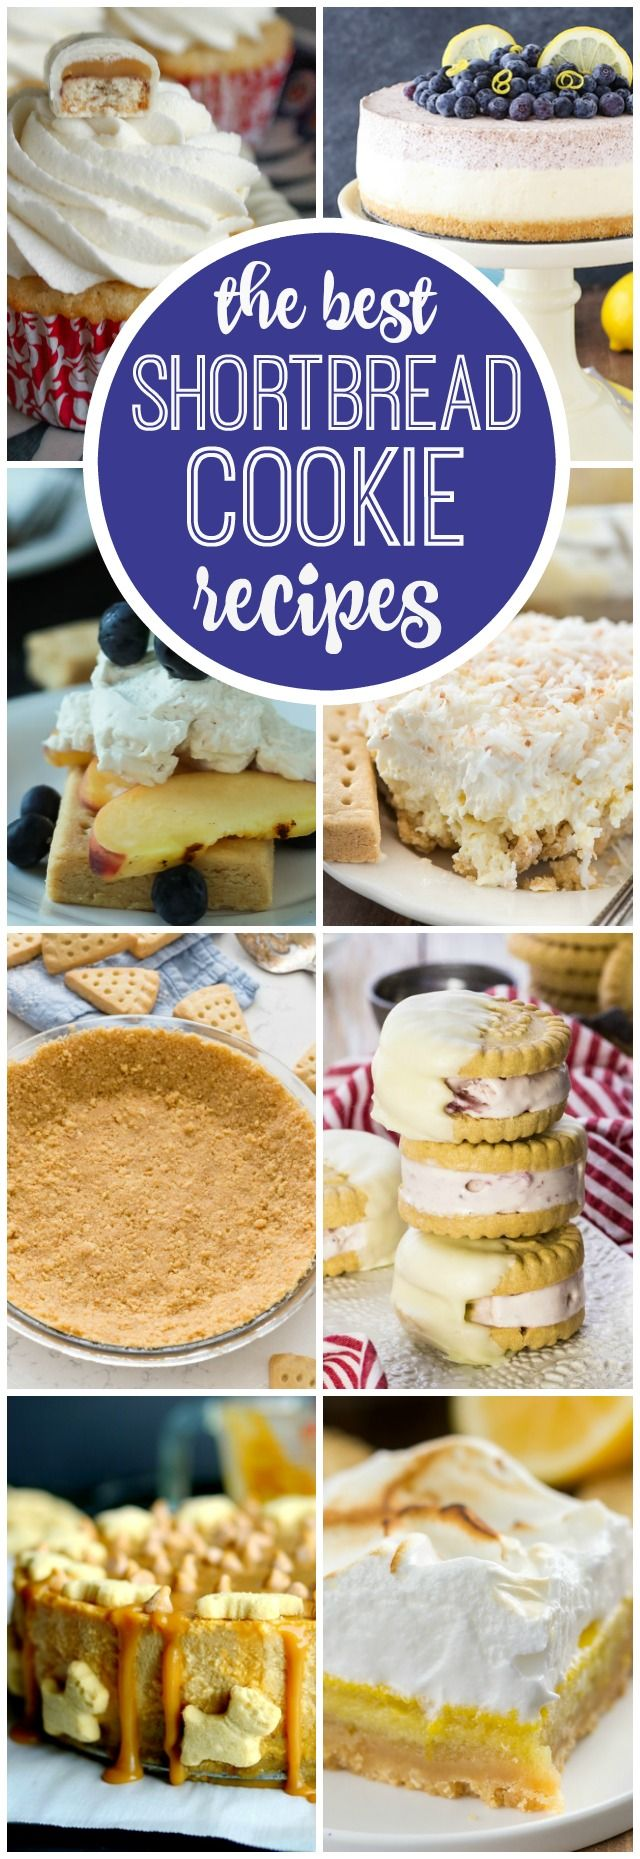 21 Shortbread Cookie Recipes to drool over